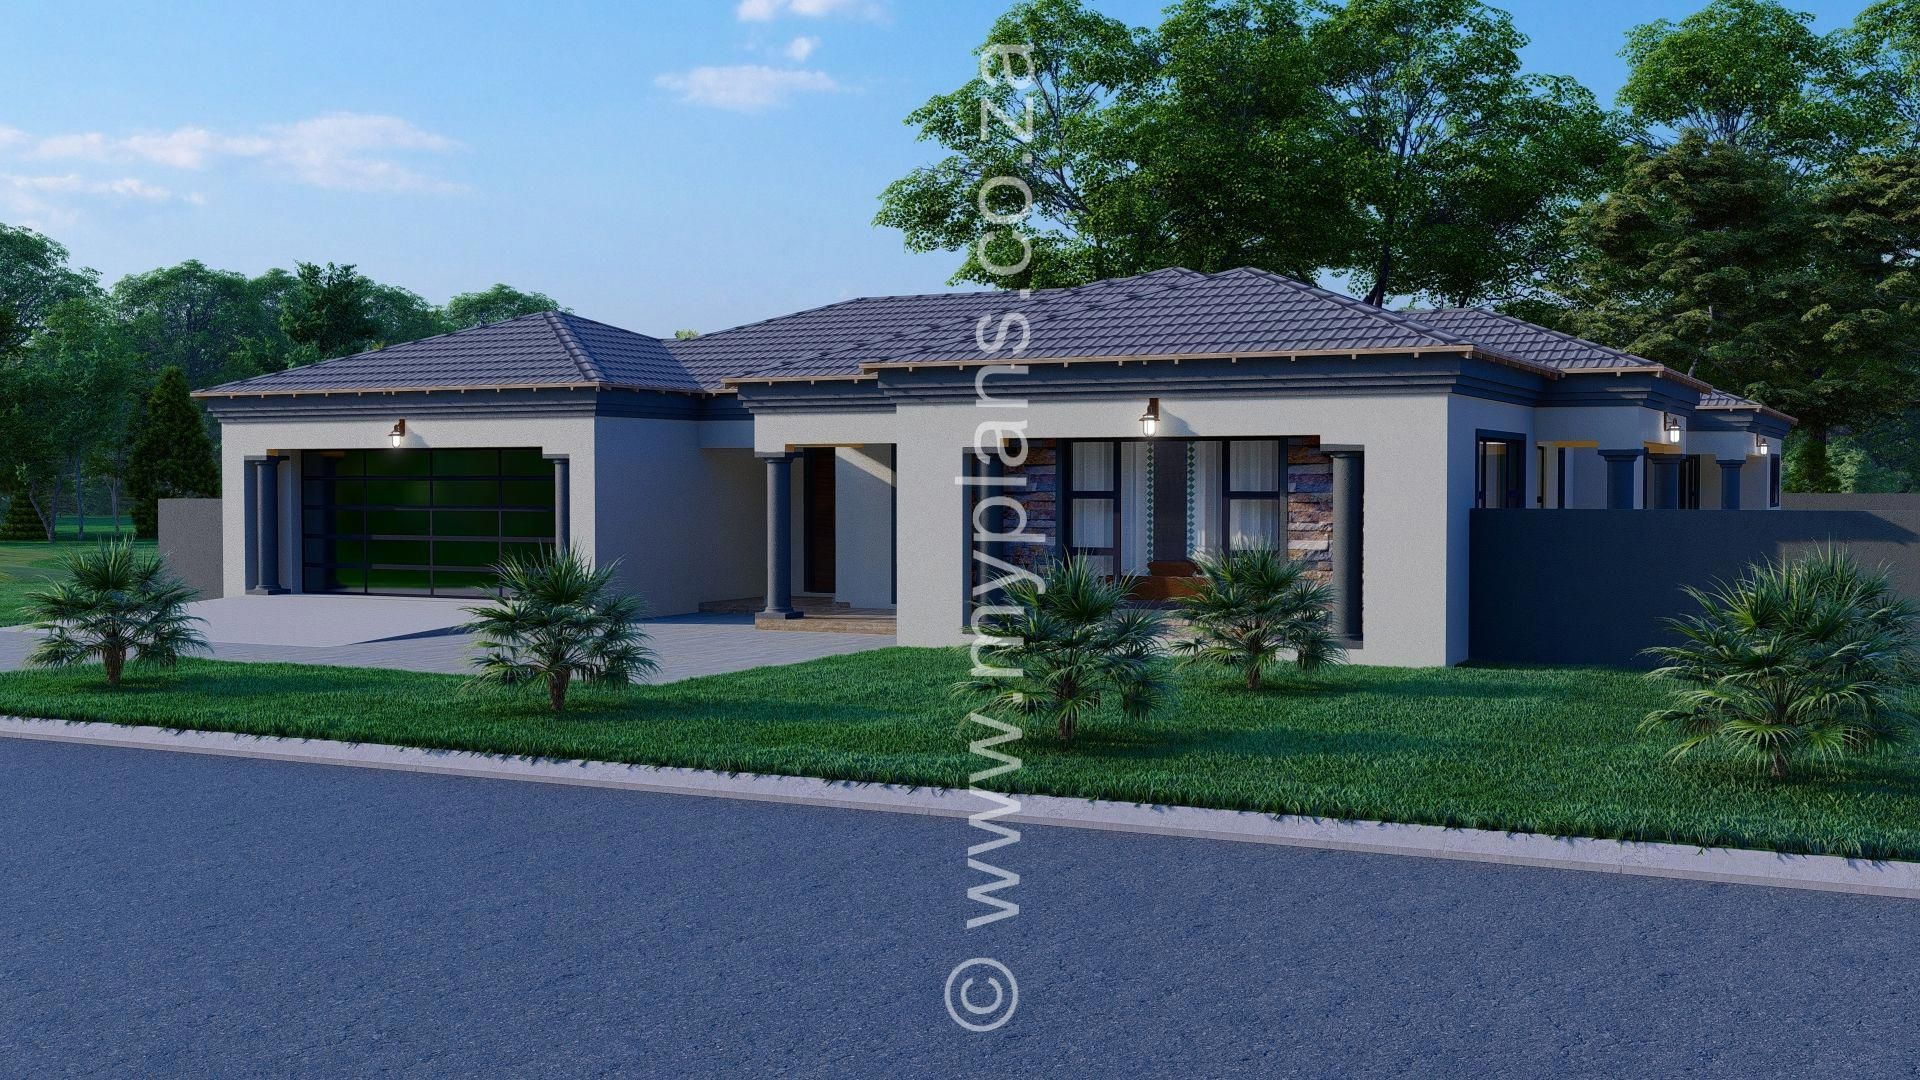 4 Bedroom House Plan Mlb 025s My Building Plans South Africa Rustickitchen In 2020 4 Bedroom House Plans Bedroom House Plans House Plans South Africa